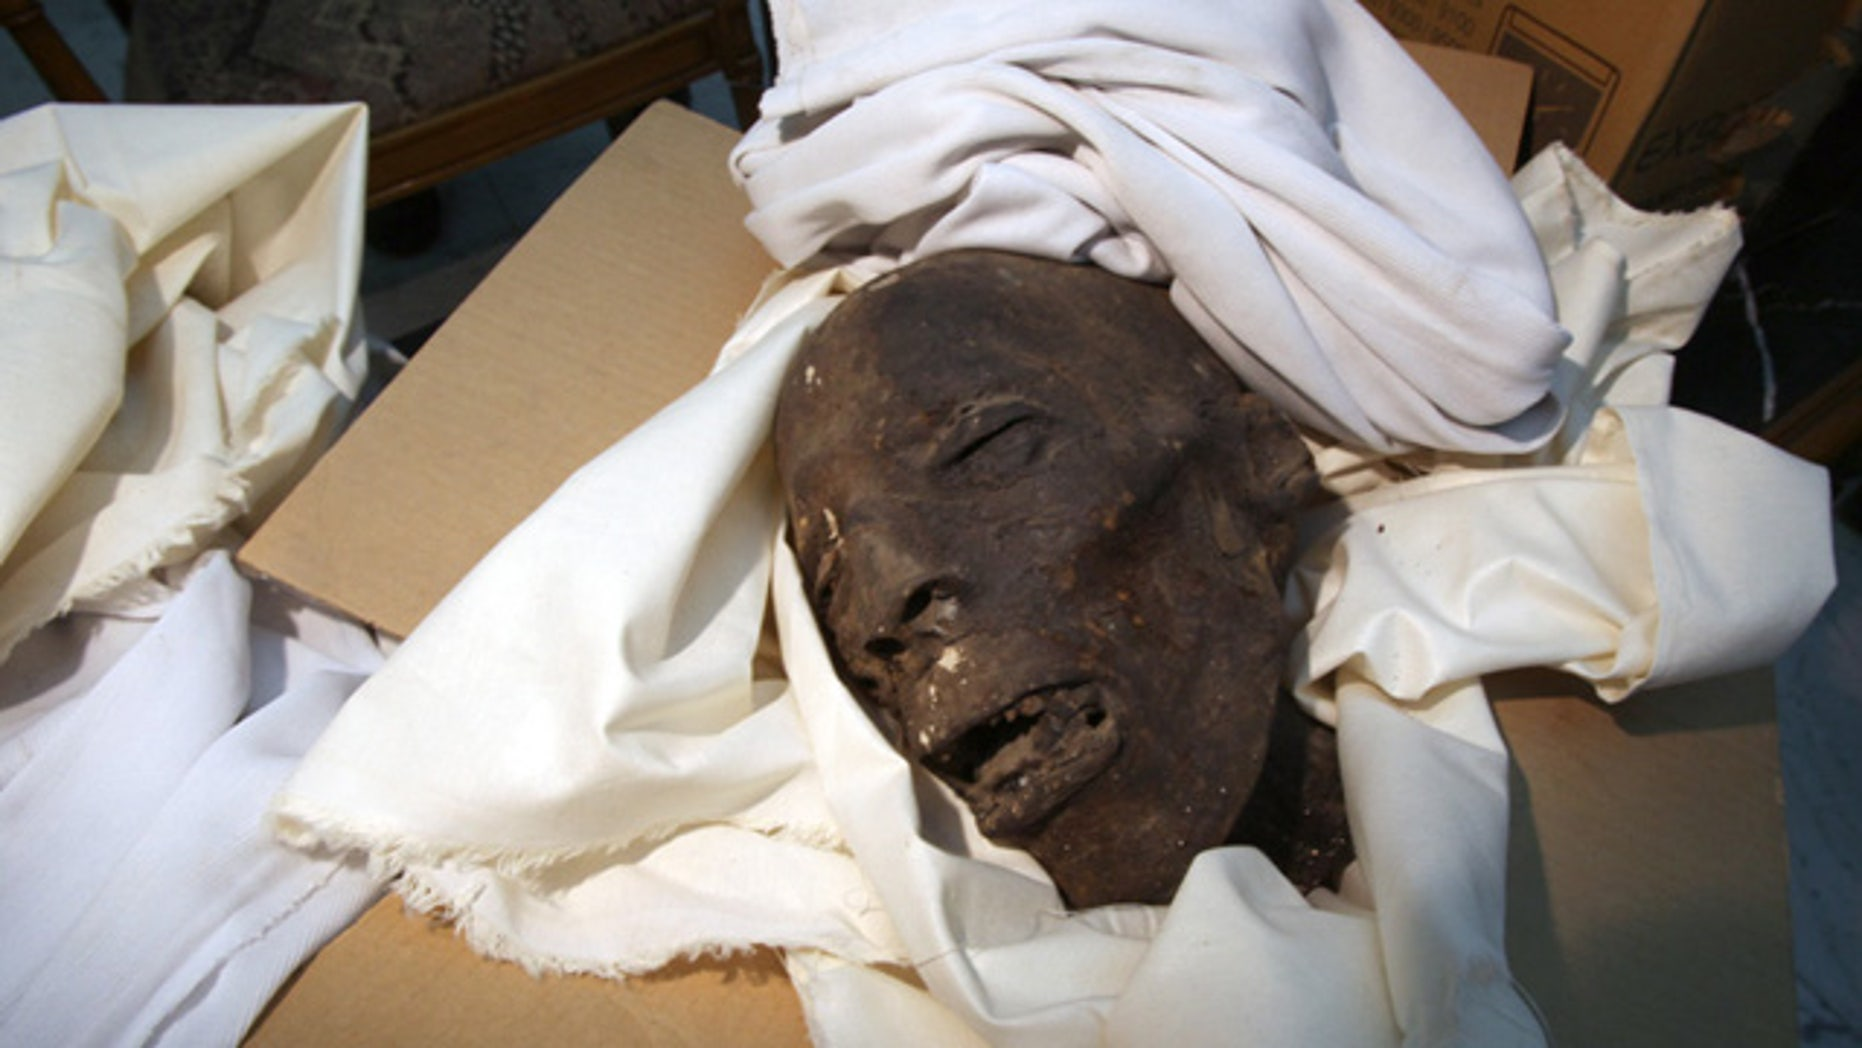 One of the Late Period Skull in the storage room next to the CT scanner lab at the Egyptian Museum, Cairo.